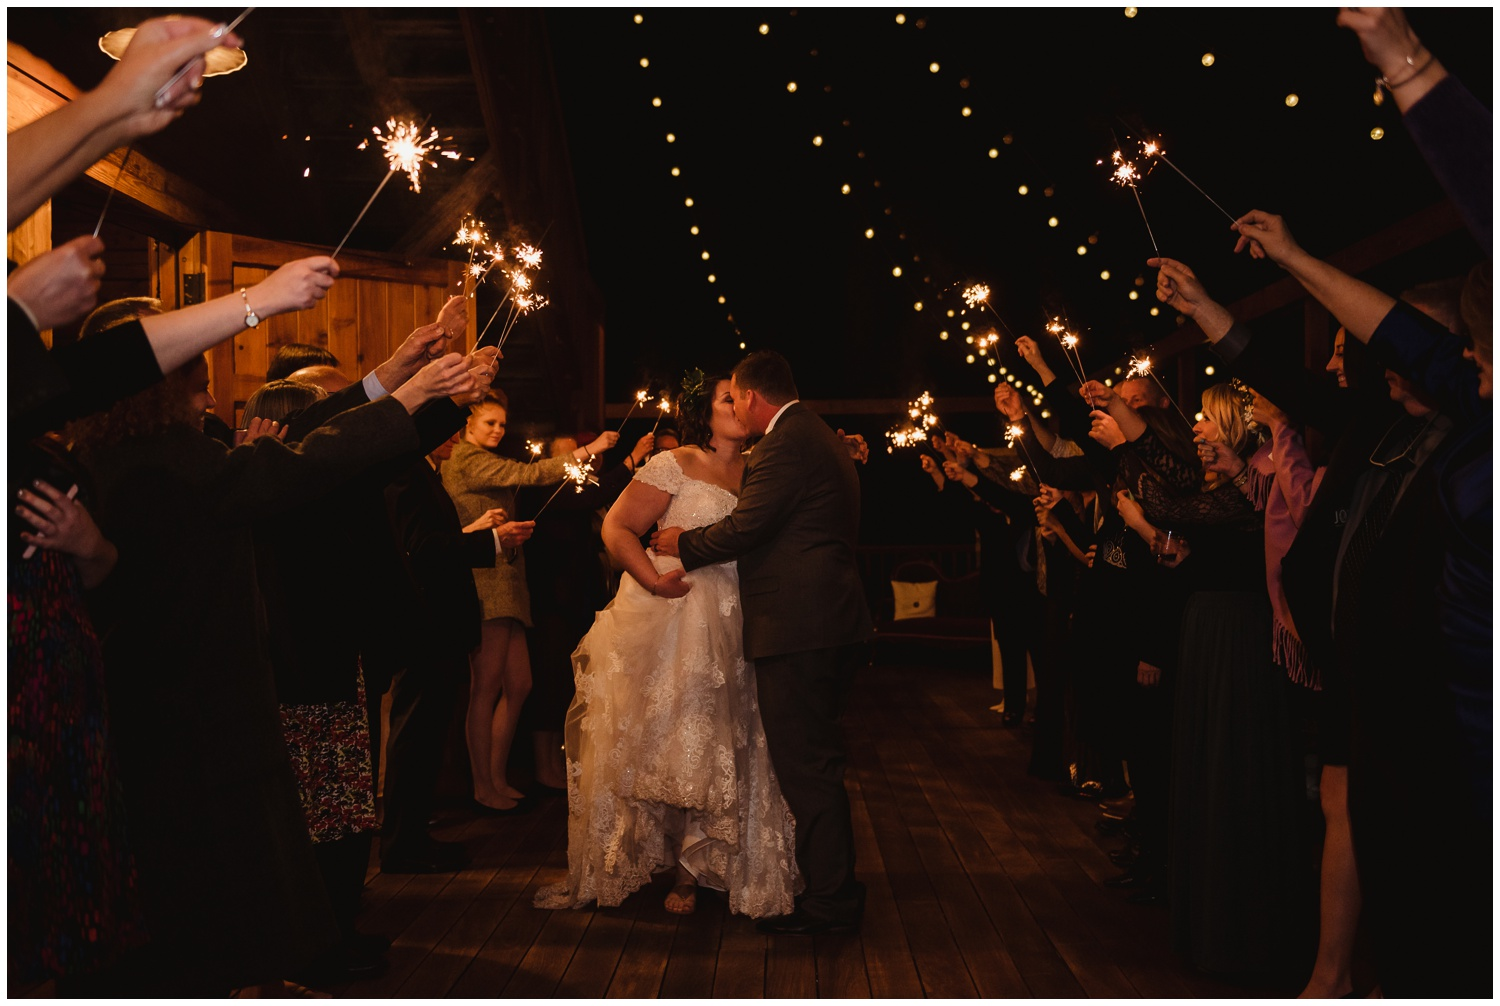 The bride and groom kiss during their sparkler exit on their wedding day at the Barn at Valhalla in Chapel Hill, taken by Rose Trail Images.